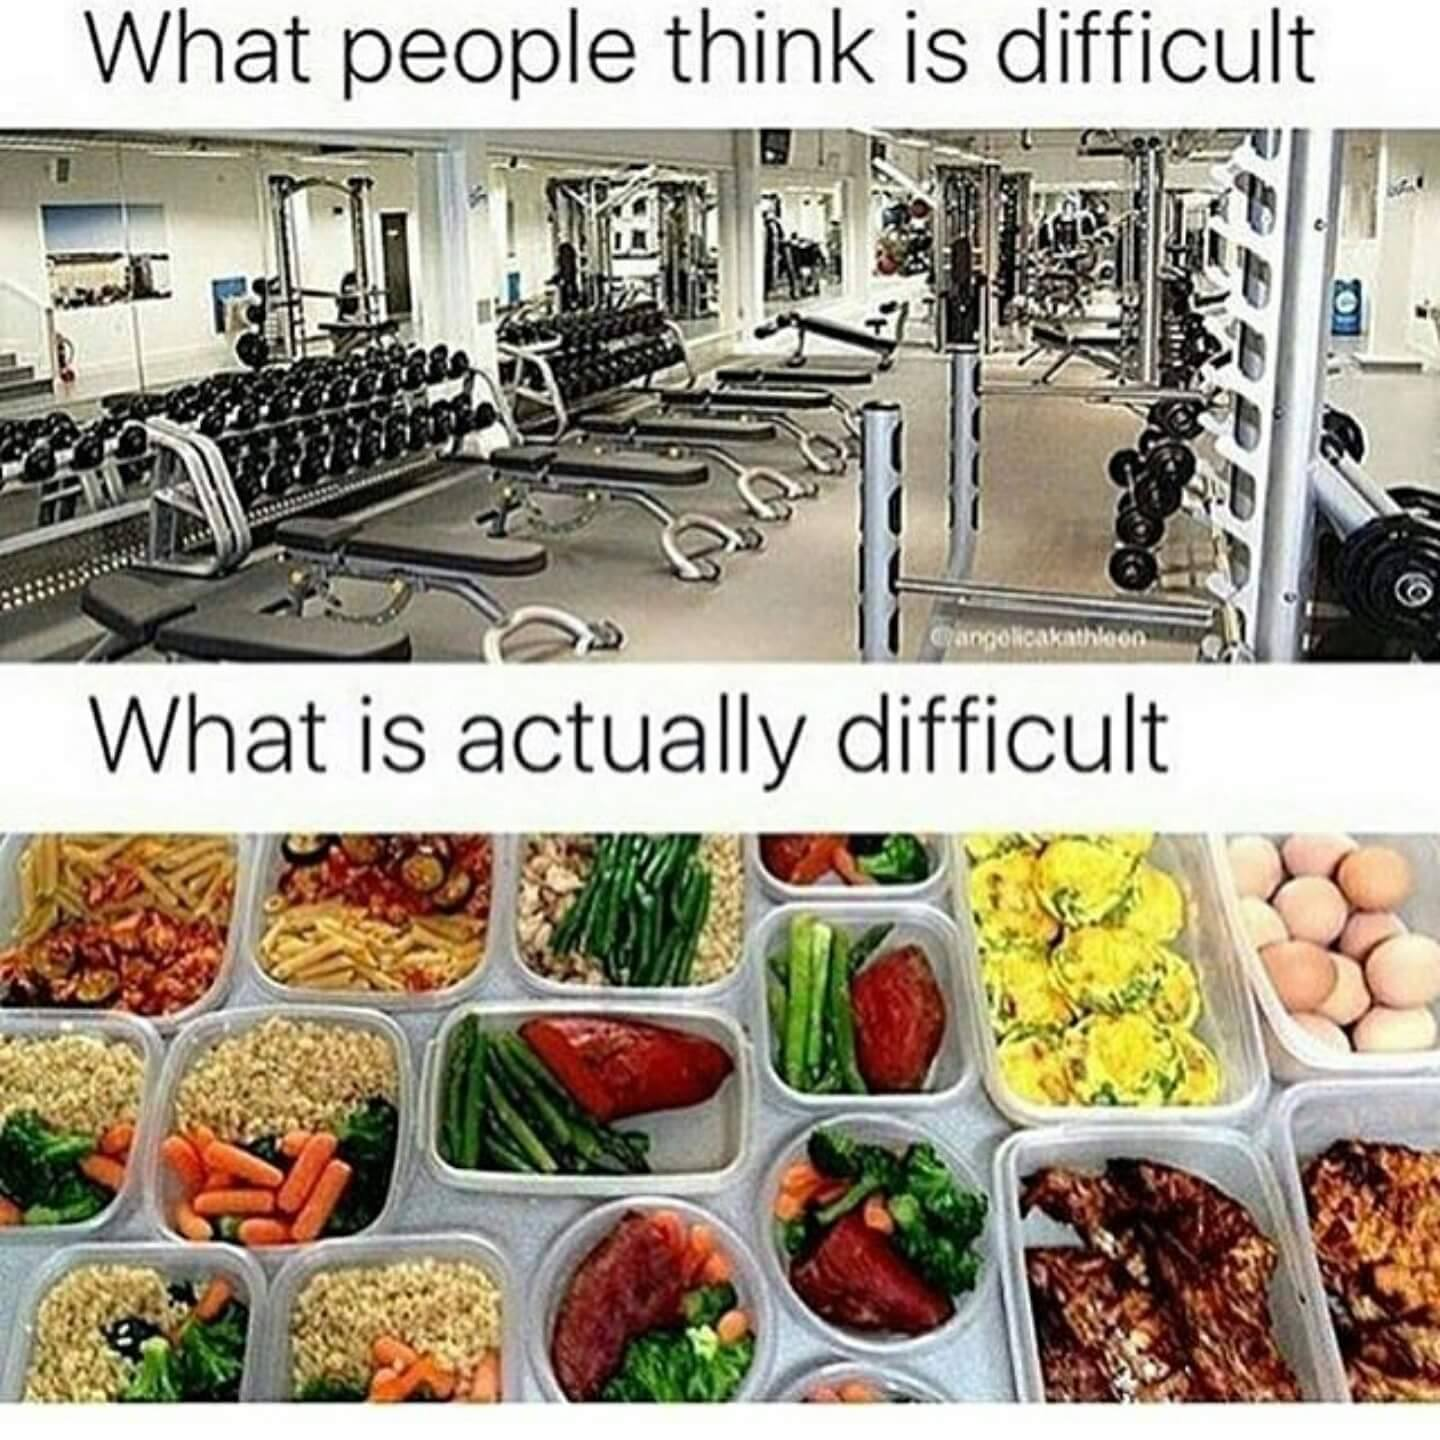 what people think is difficult, what is actually difficult, the gym versus healthy eating